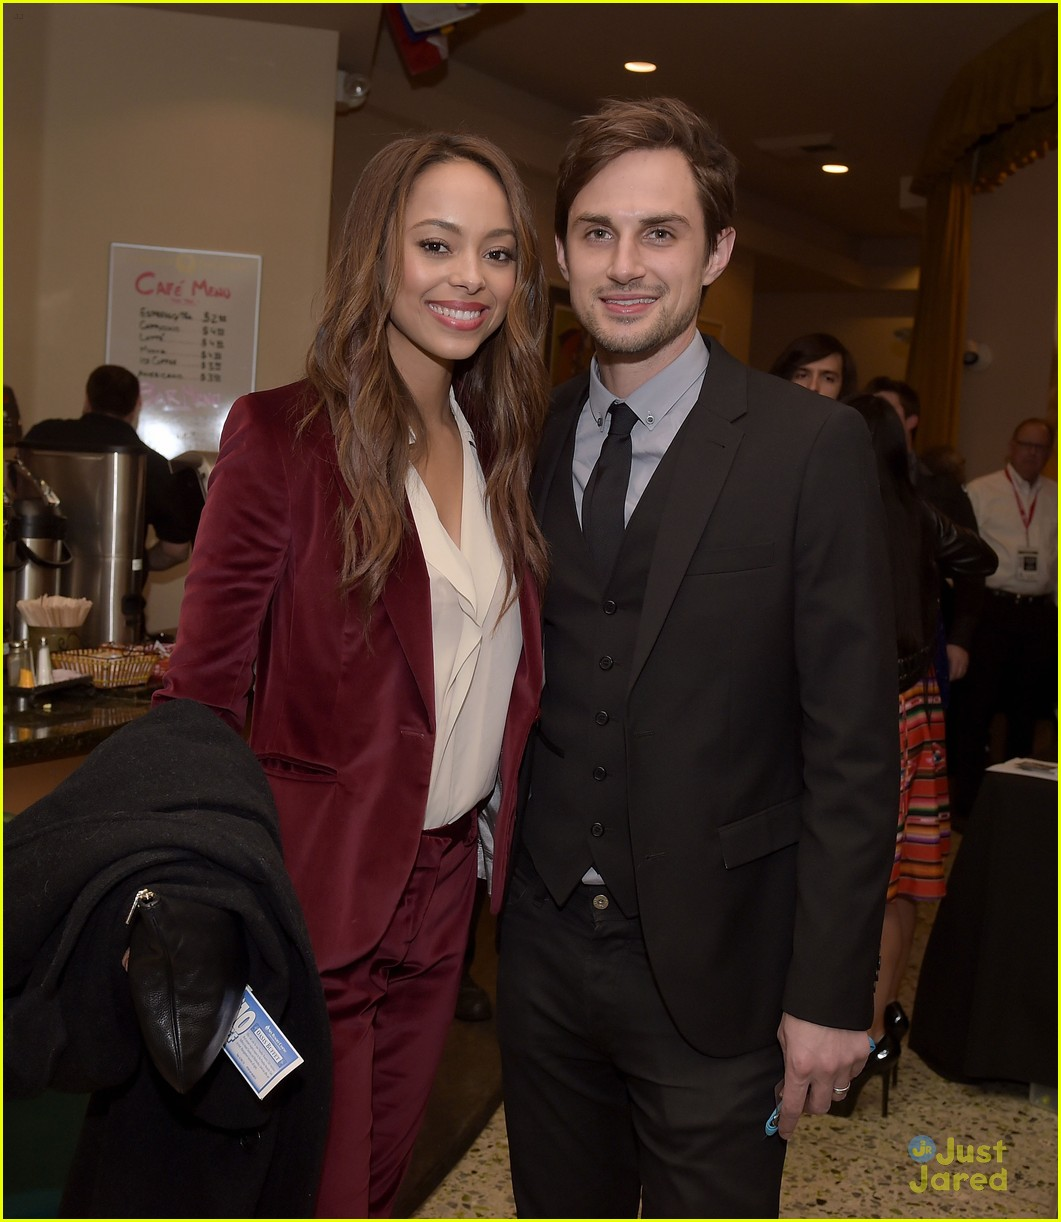 amber stevens dating andrew west Amber stevens marries andrew j west, the walking dead's on friday married longtime boyfriend and former co-star andrew j west, who.